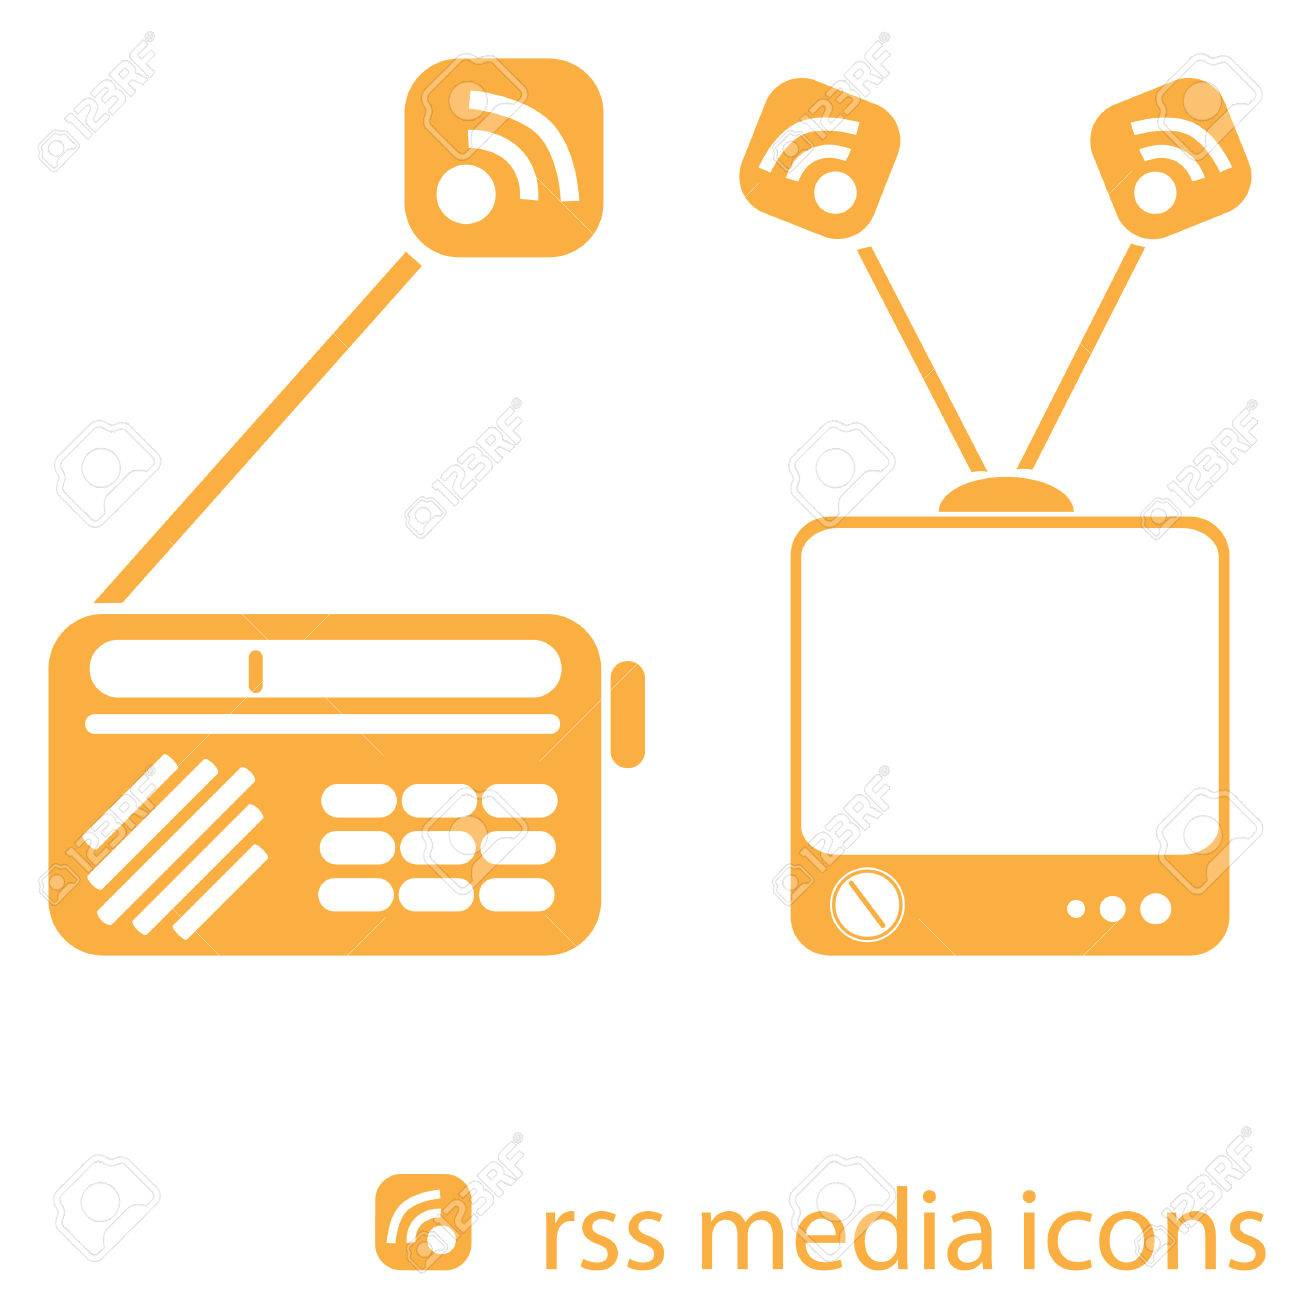 Illustration Of Vintage Radio And TV With RSS Symbol Coming Out ... for Tv Antenna Symbol  75sfw